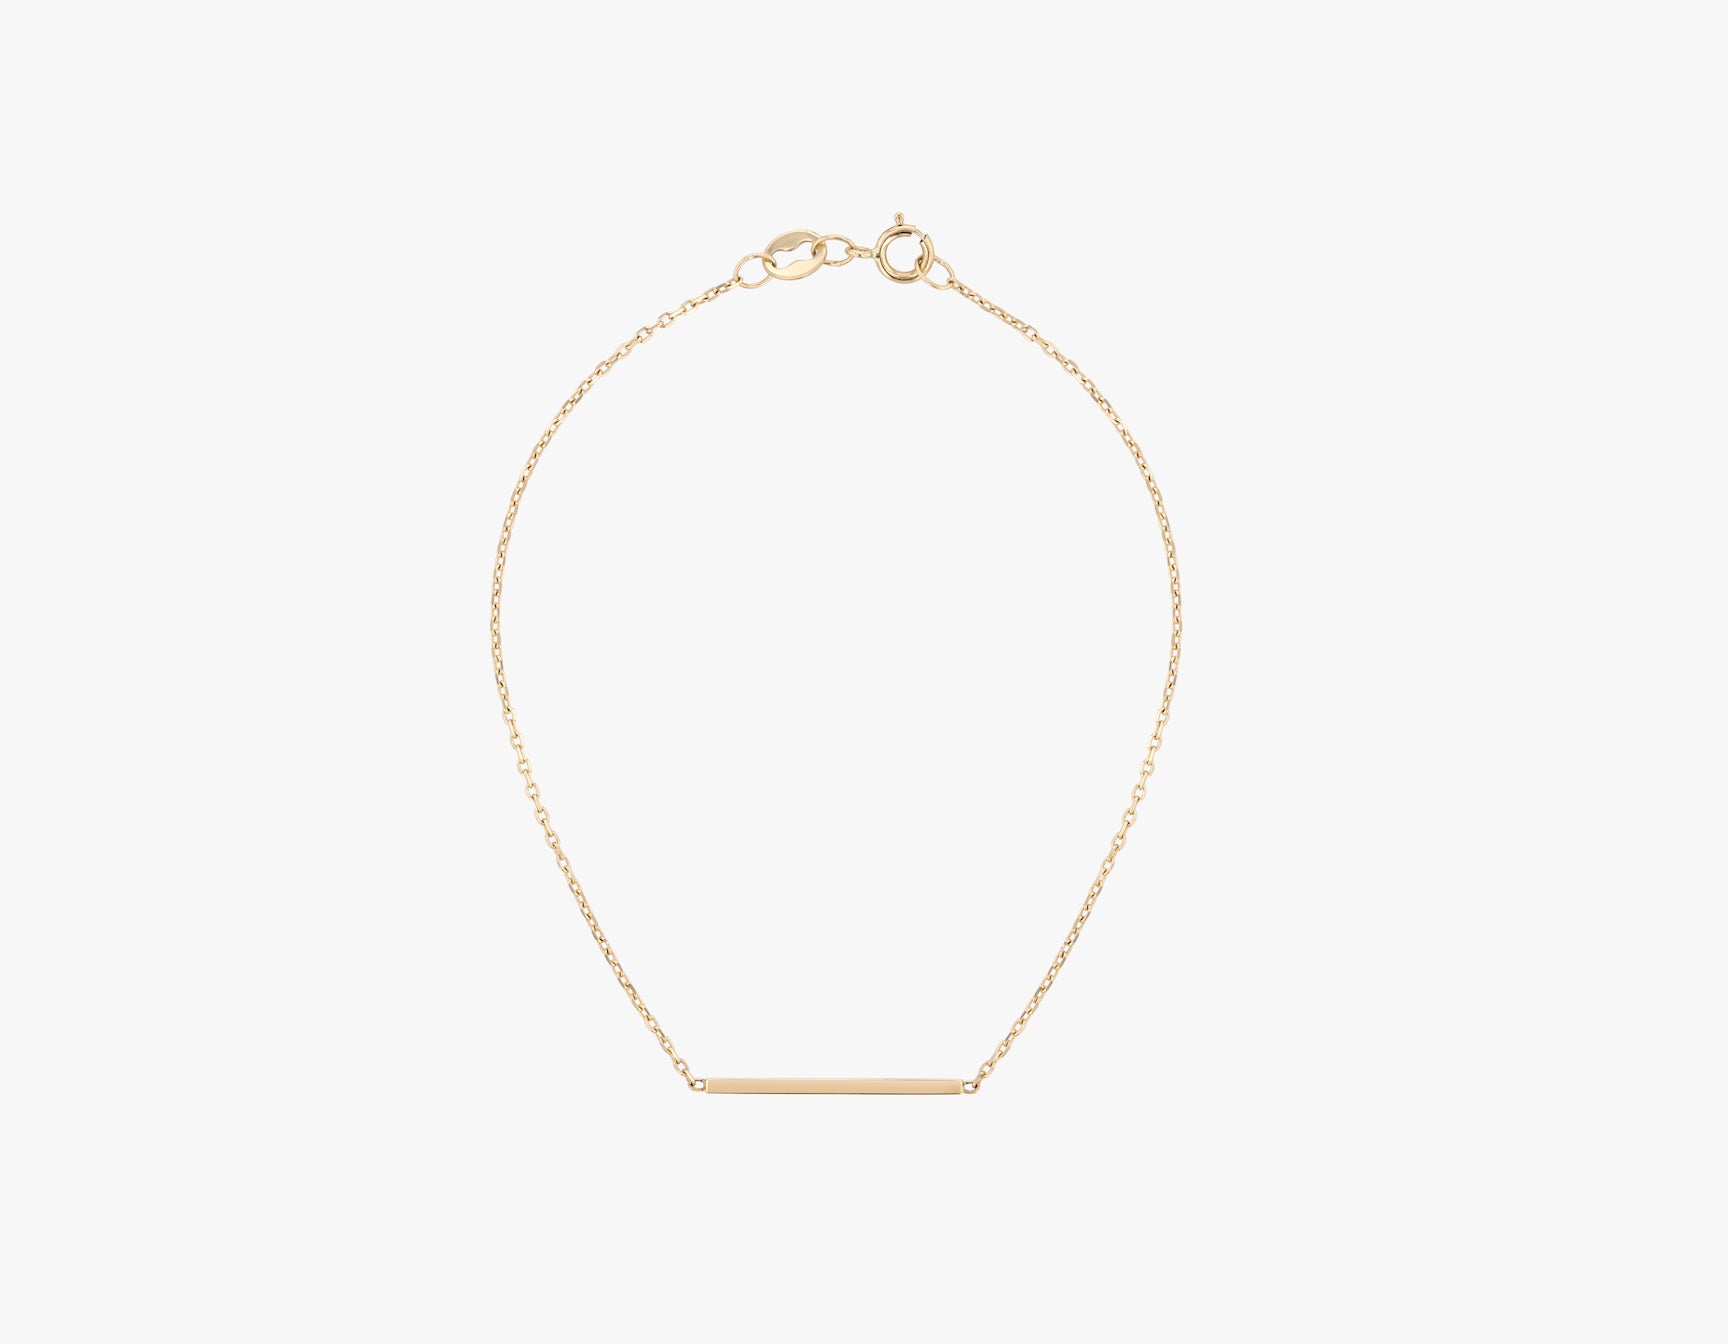 Vrai solid gold Line Bracelet, 14K Yellow Gold